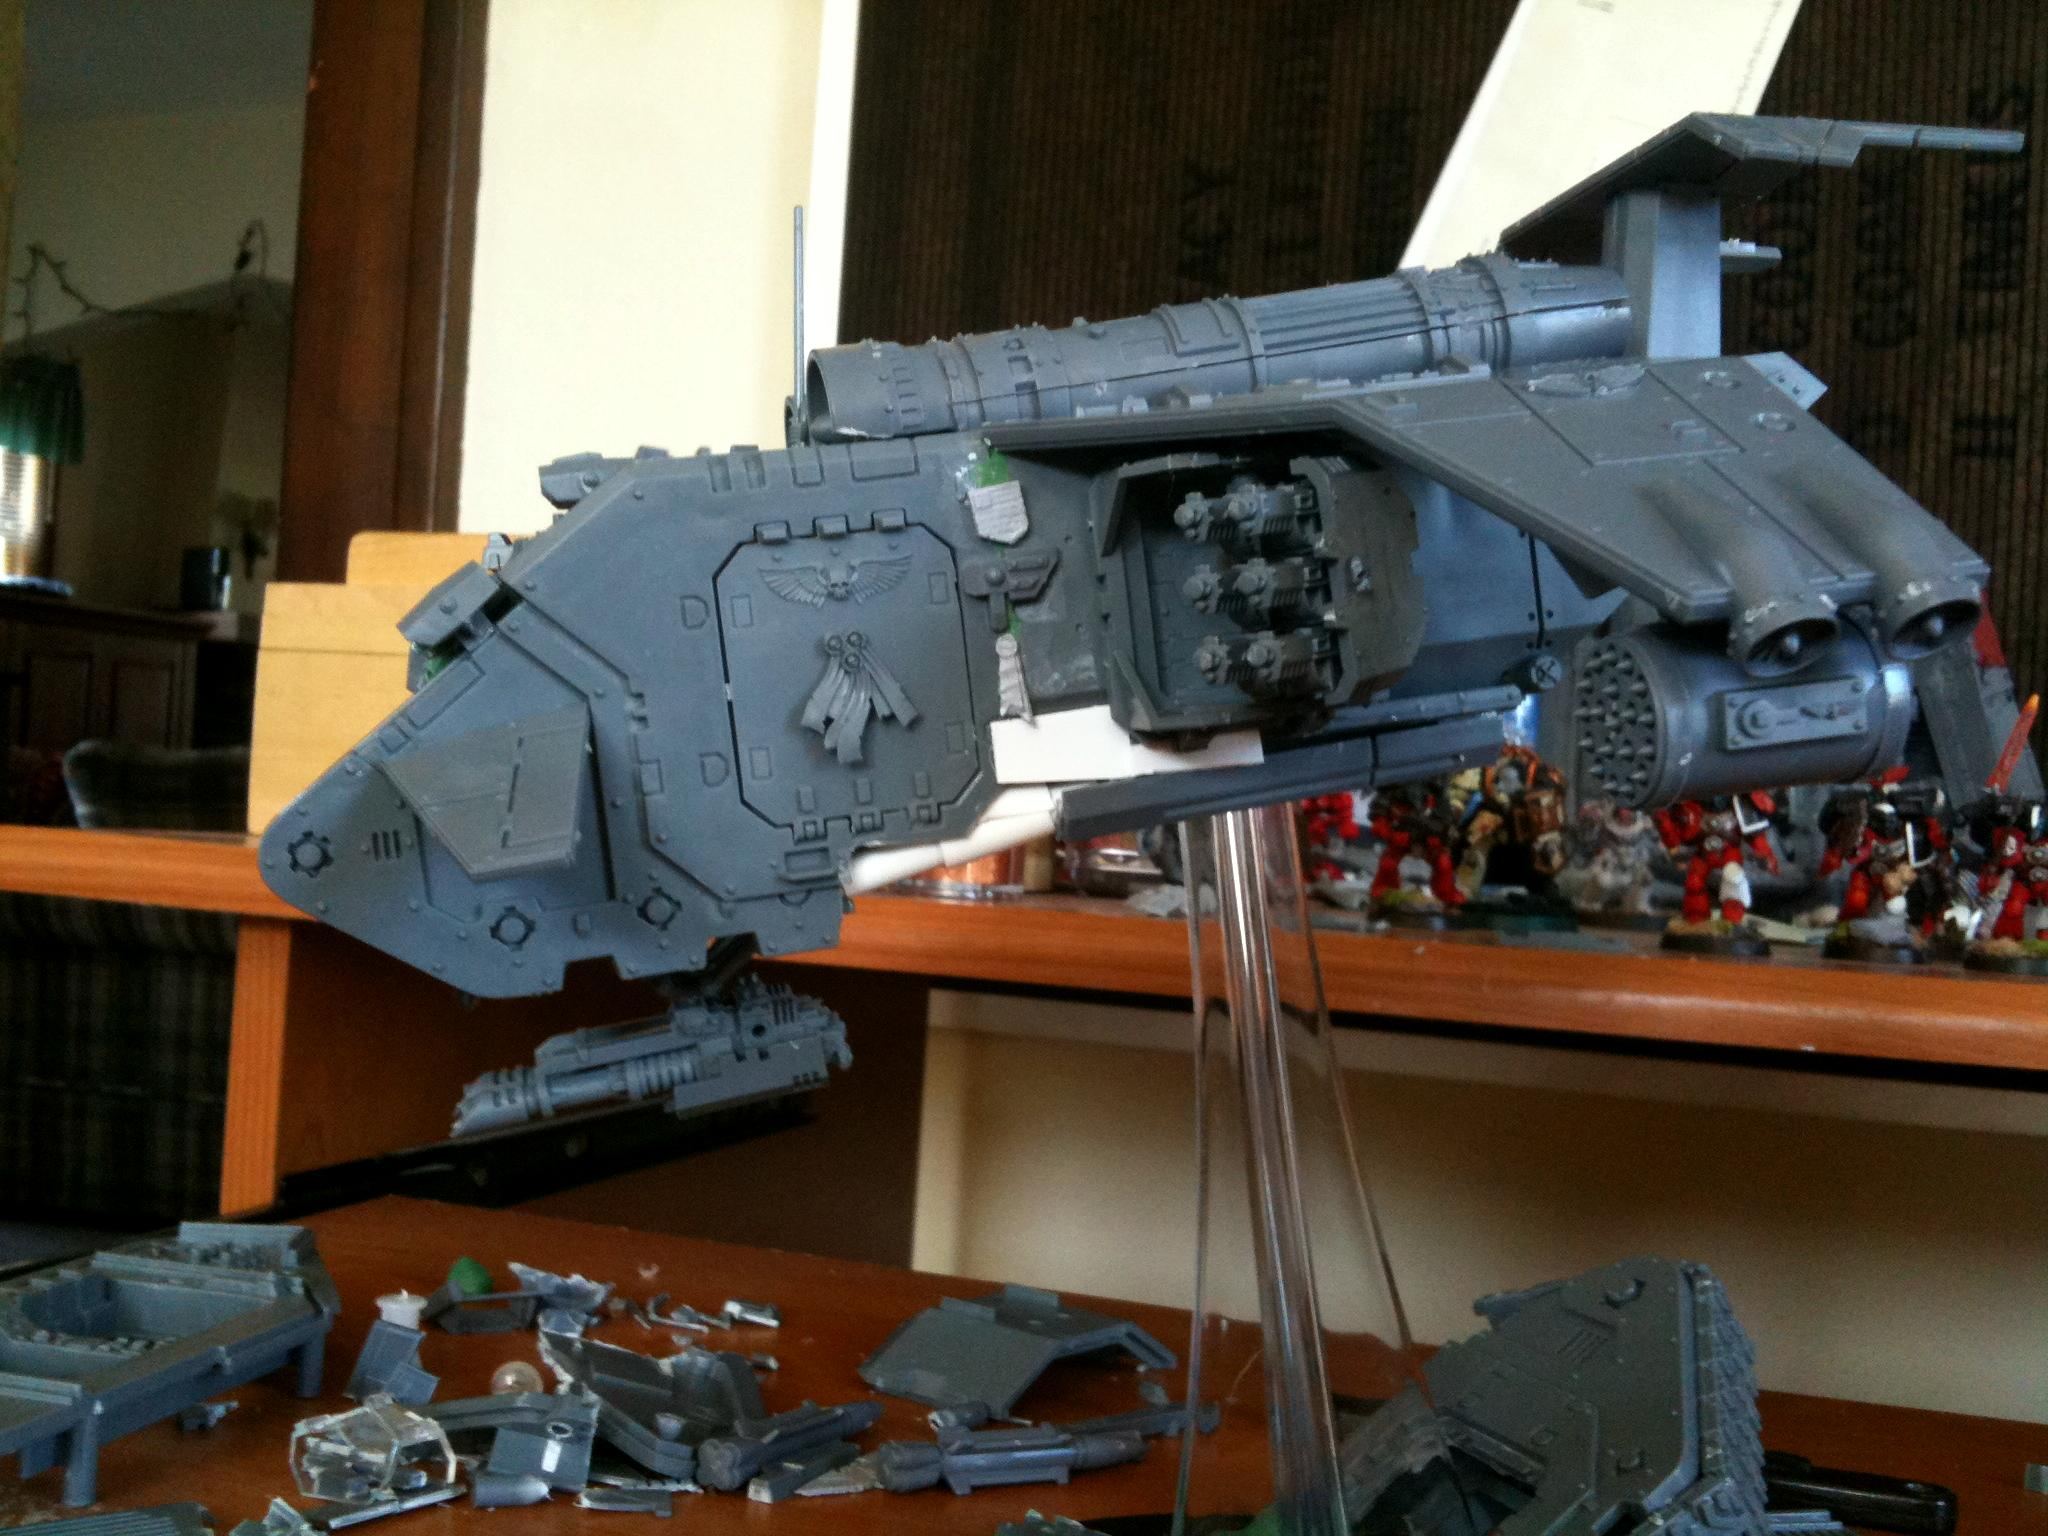 stormraven, from the right